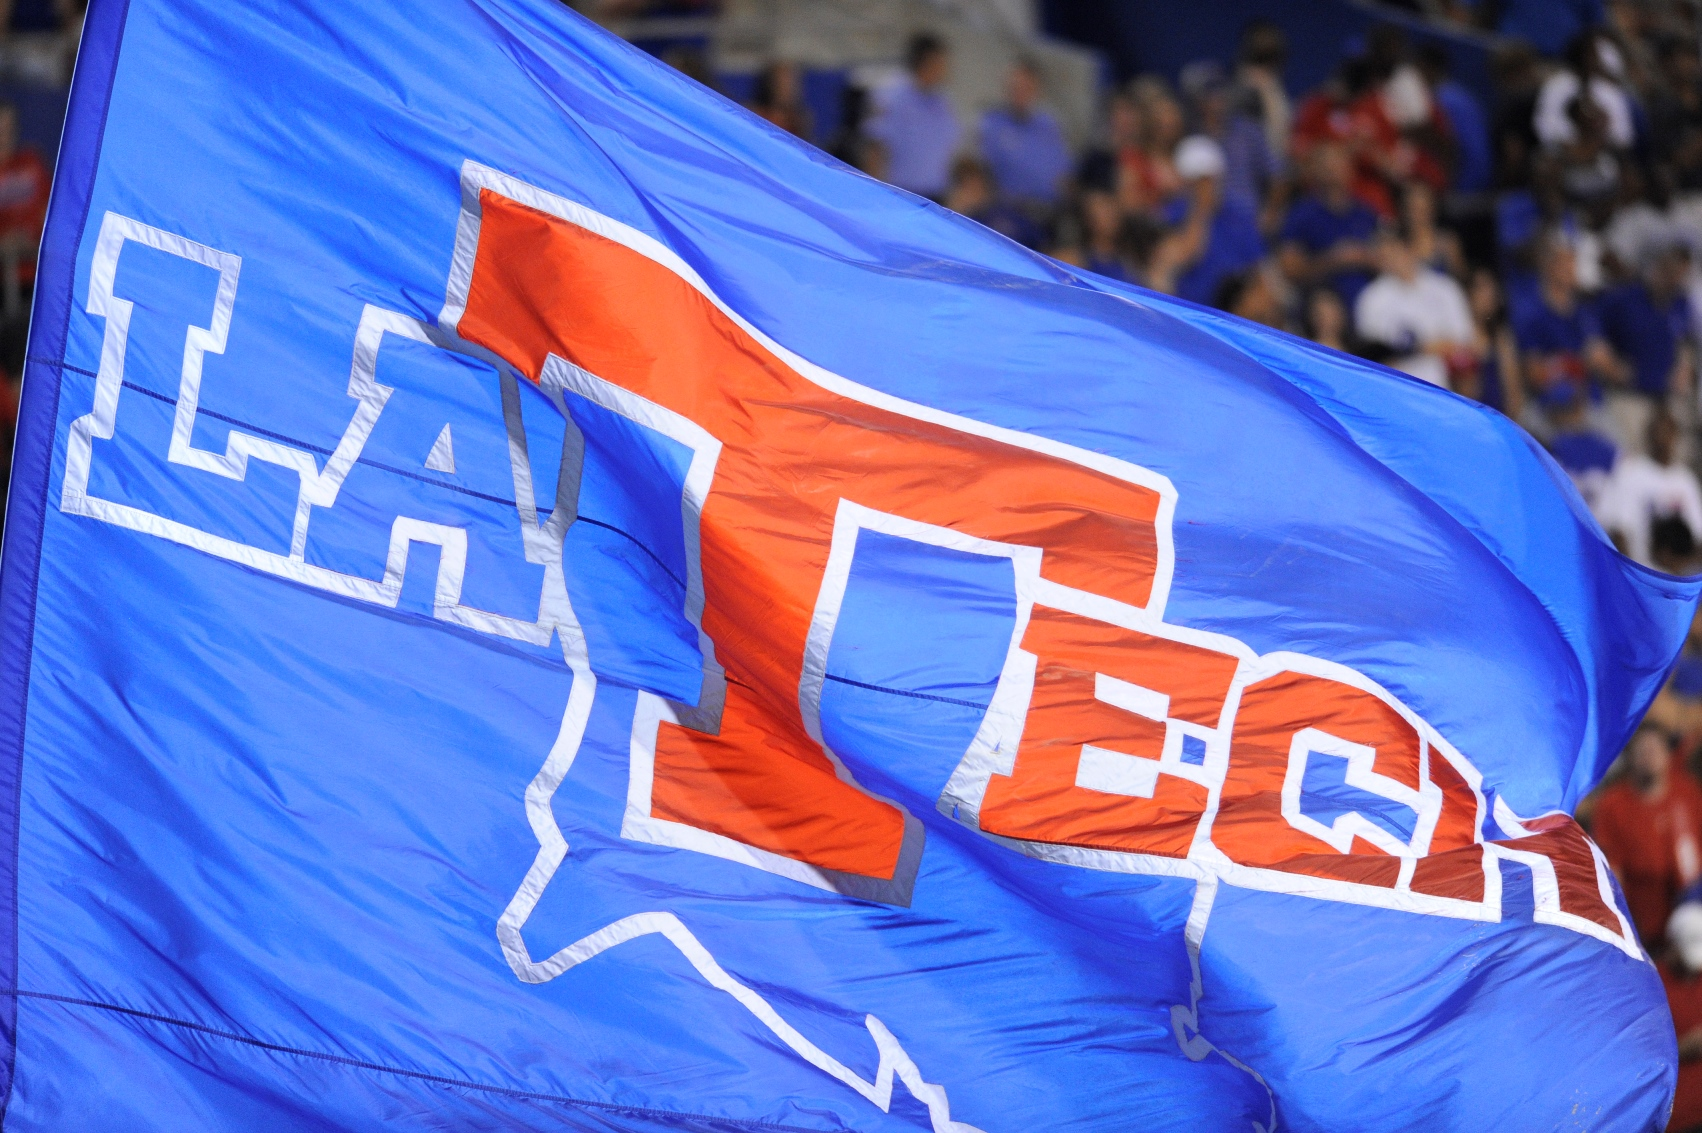 Louisiana Tech Flag_1457963070752.jpg